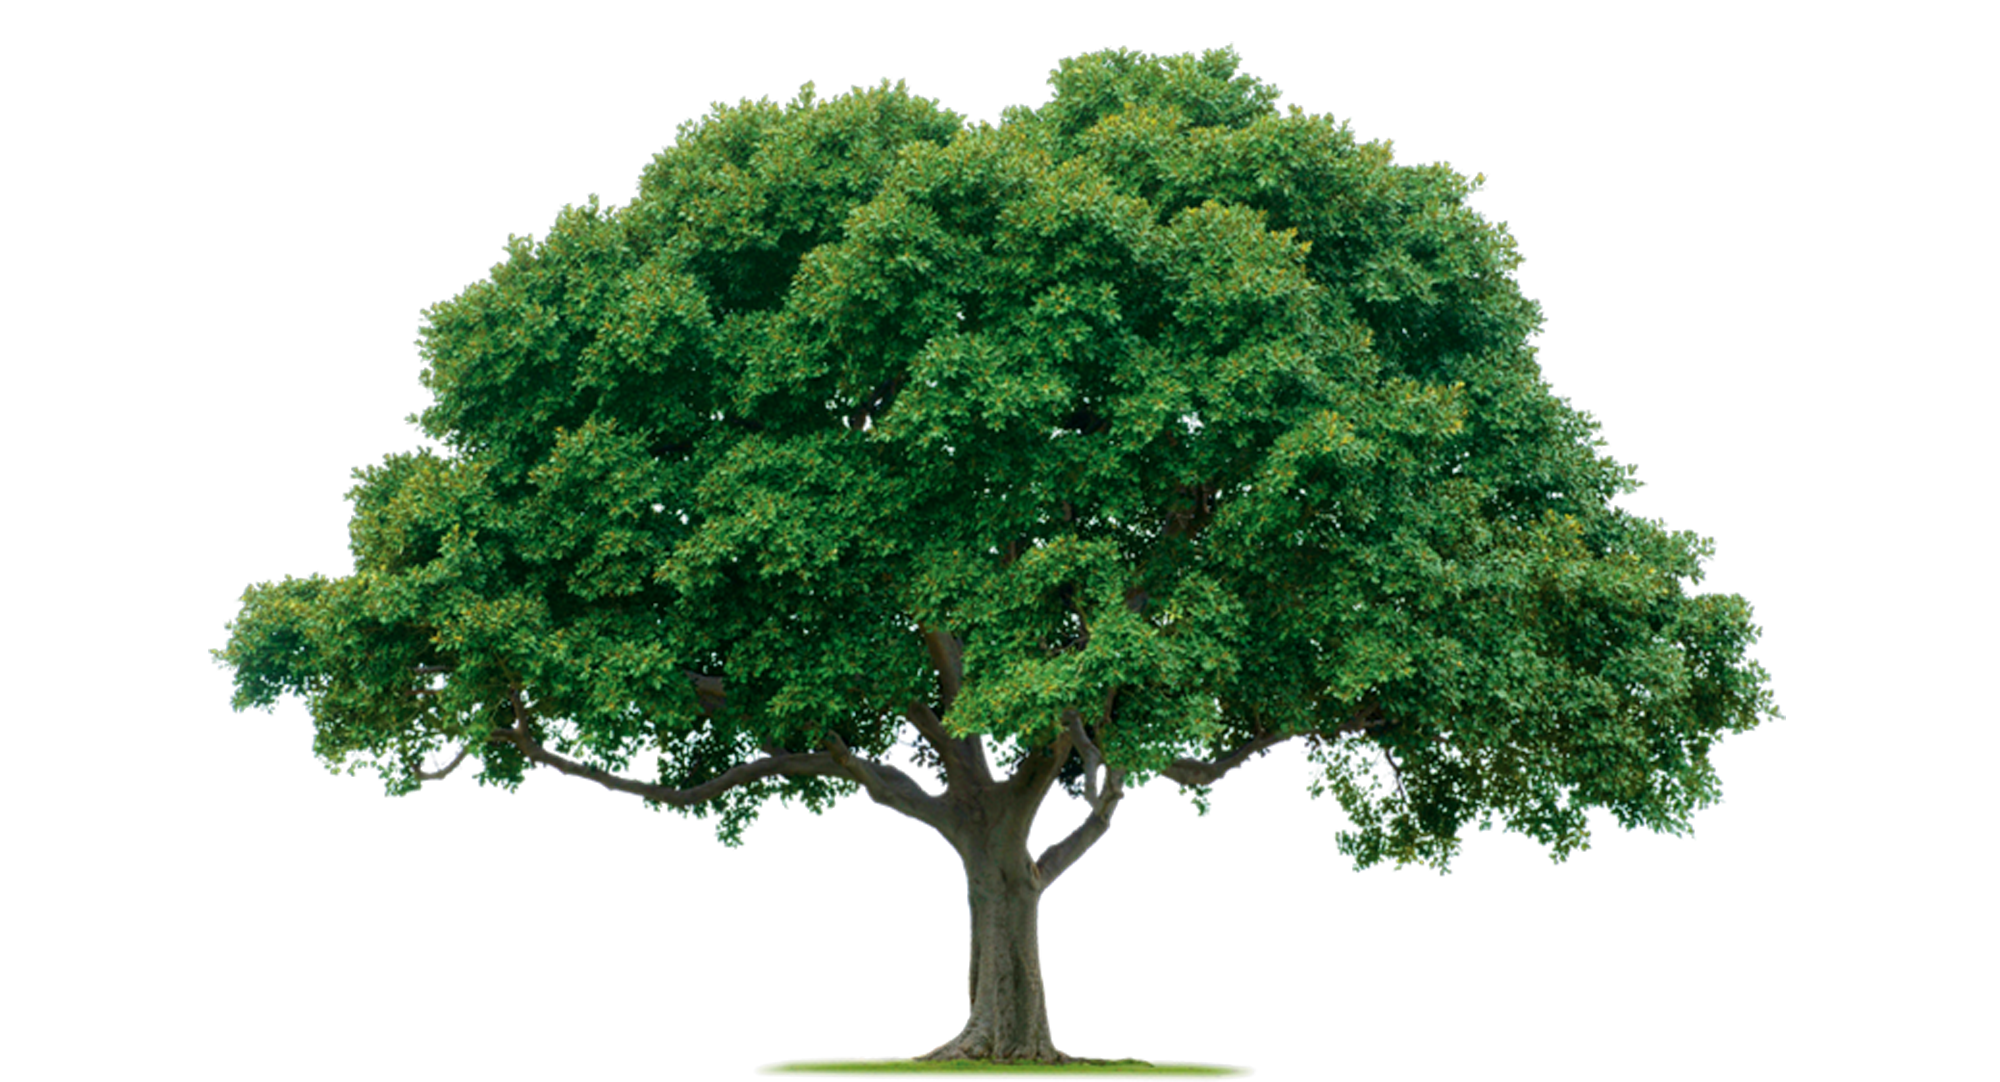 Png images gallery. Free photo tree scenery